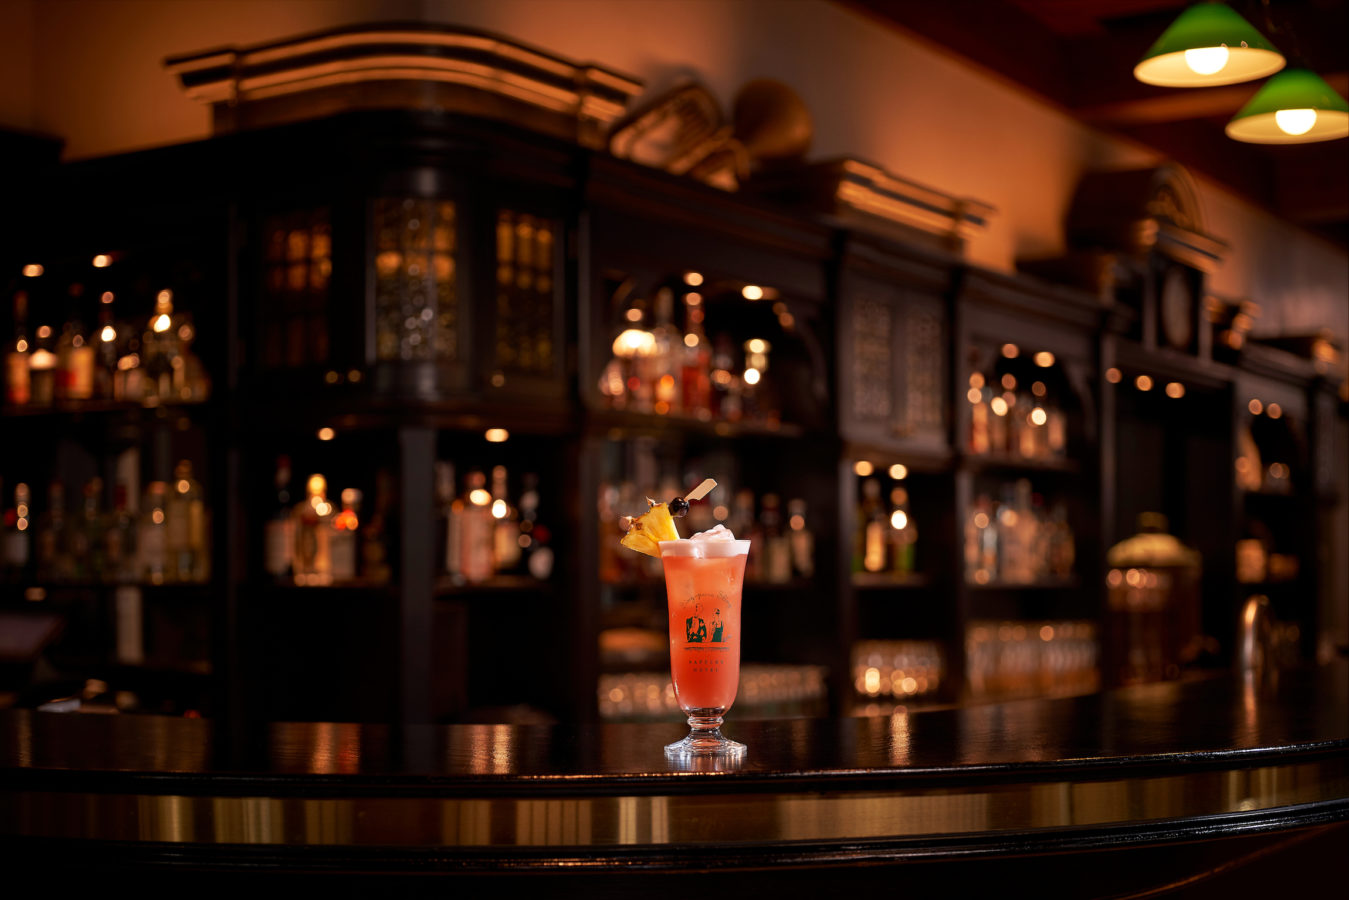 How to make a real Singapore Sling, according to Long Bar at Raffles Hotel Singapore